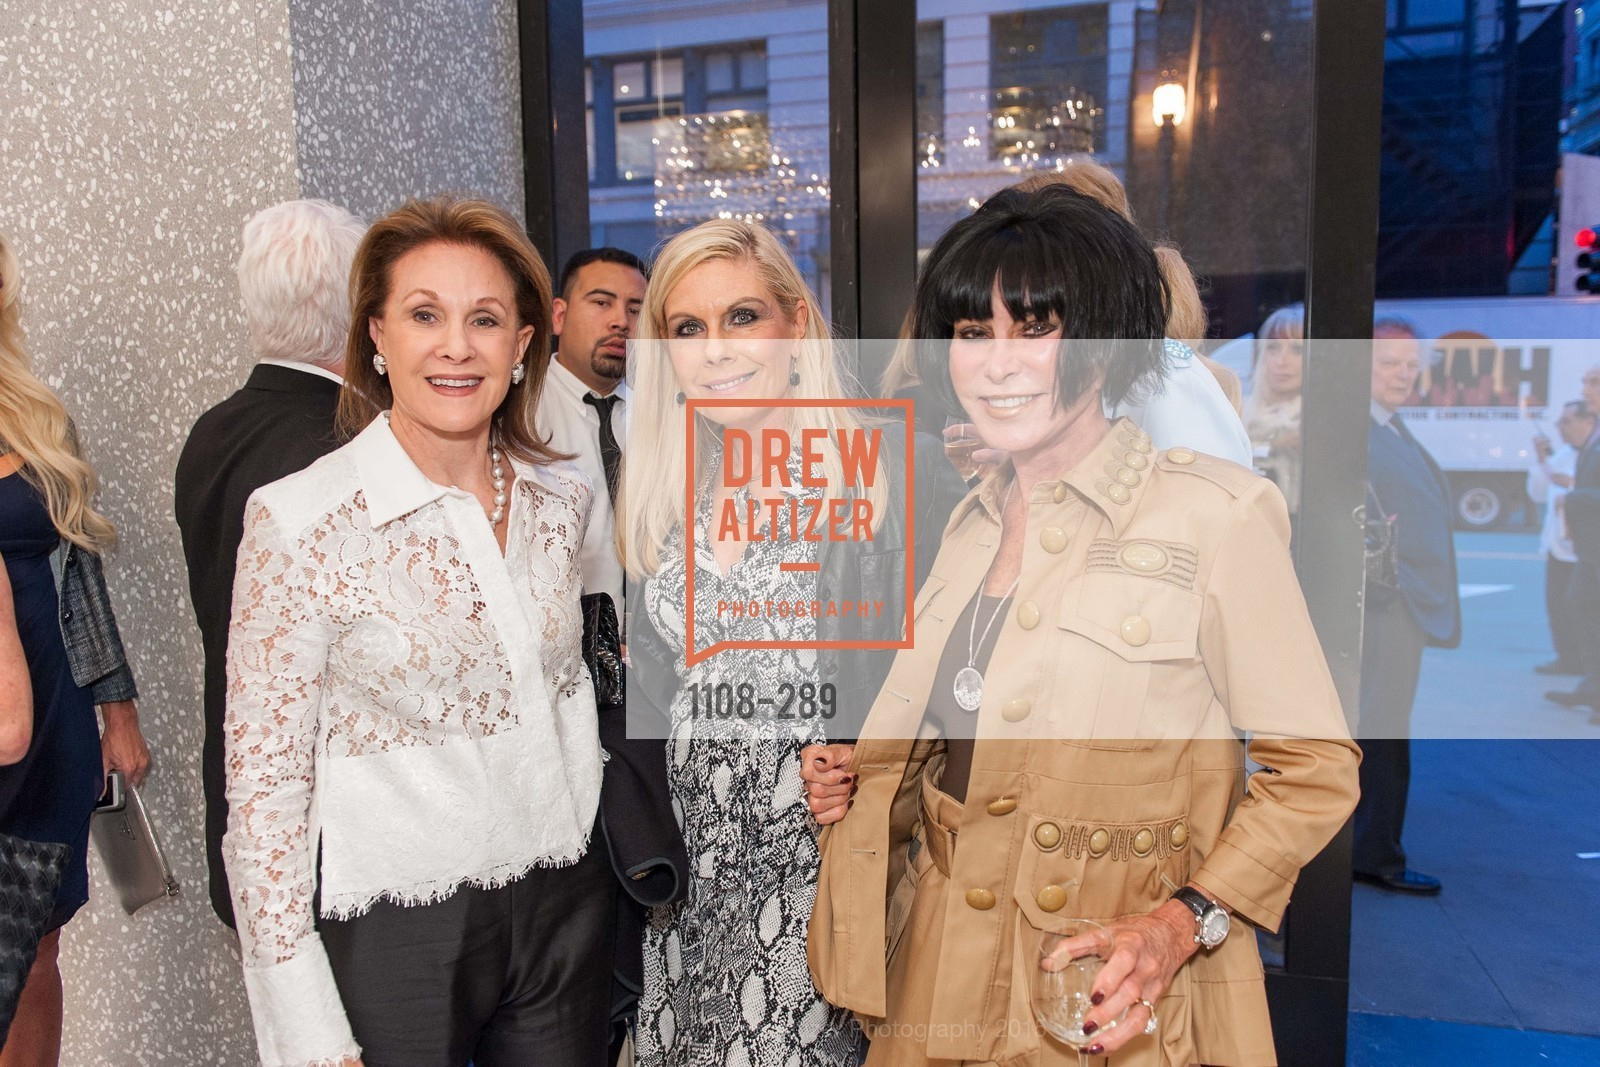 Lucie Weissman, Jacqueline Jacoby, Marilyn Cabak, Valentino Hosts San Francisco Symphony Gala Kickoff Party, Valentino, September 15th, 2015,Drew Altizer, Drew Altizer Photography, full-service agency, private events, San Francisco photographer, photographer california